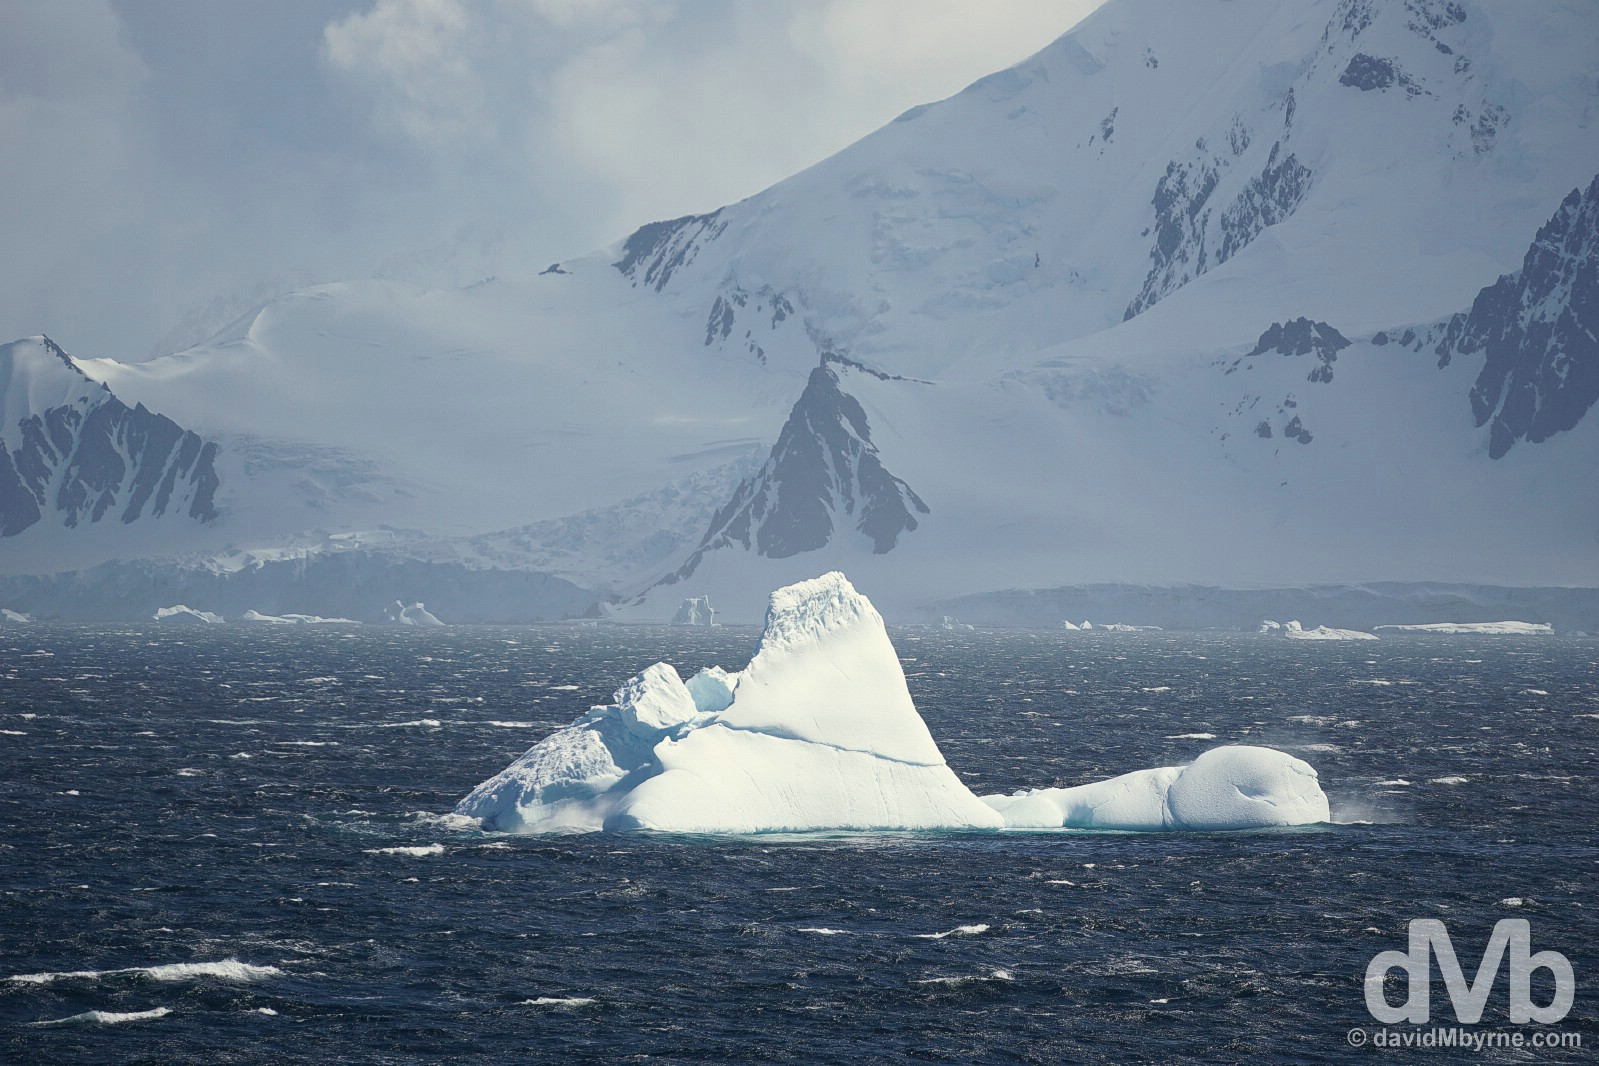 An iceberg in the windswept Bransfield Strait, Antarctica. November 29, 2015.